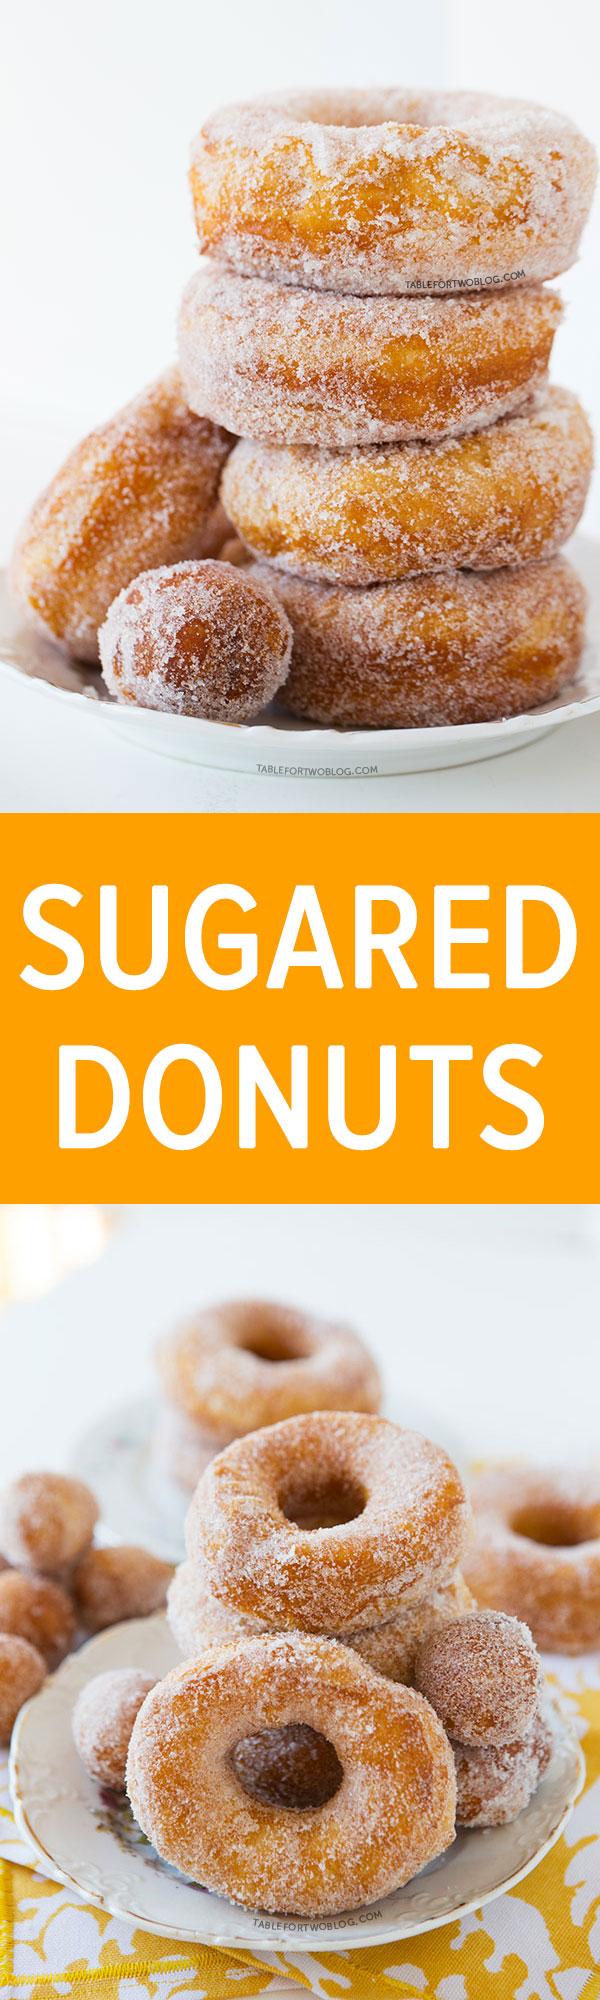 Nothing better than a classic fried sugared donut! Covered in sugar, this donut is special because it takes only three ingredients to make this. You won't believe what the one major ingredient is!